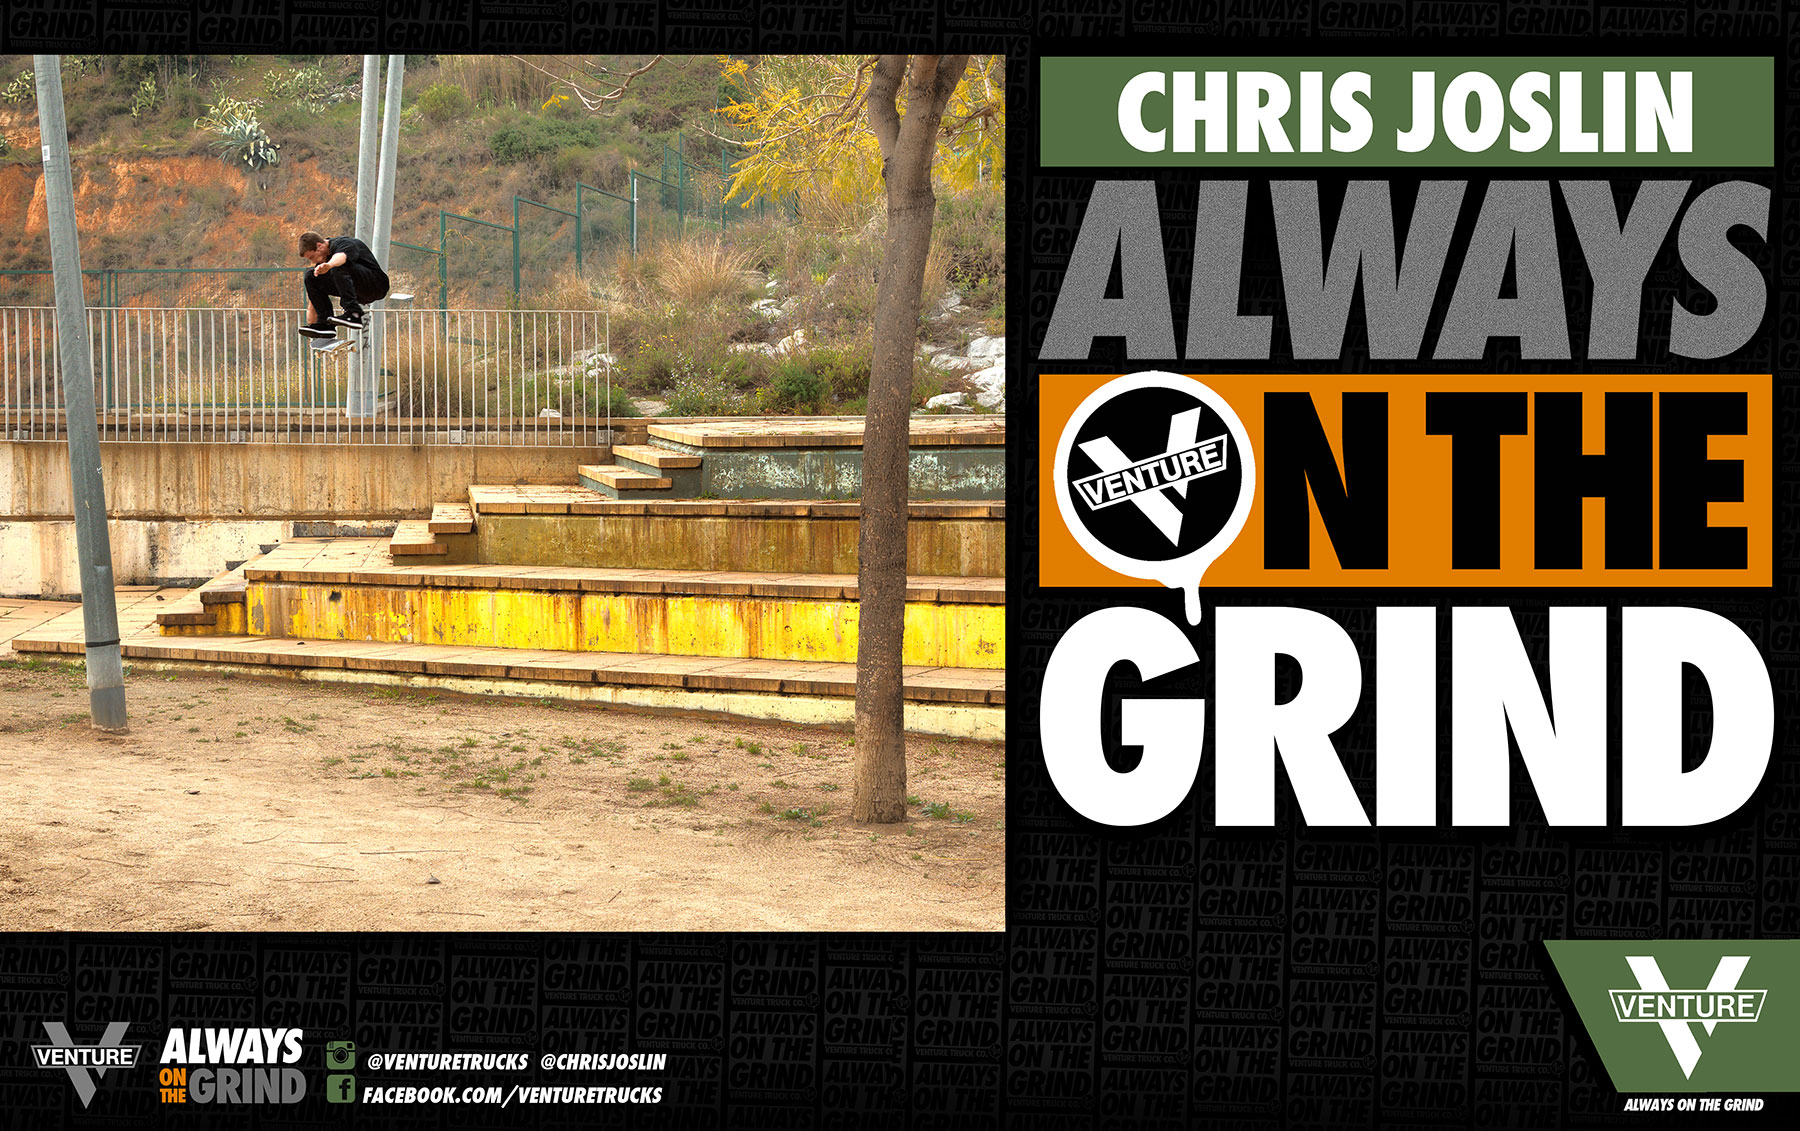 Chris Joslin Always on the Grind